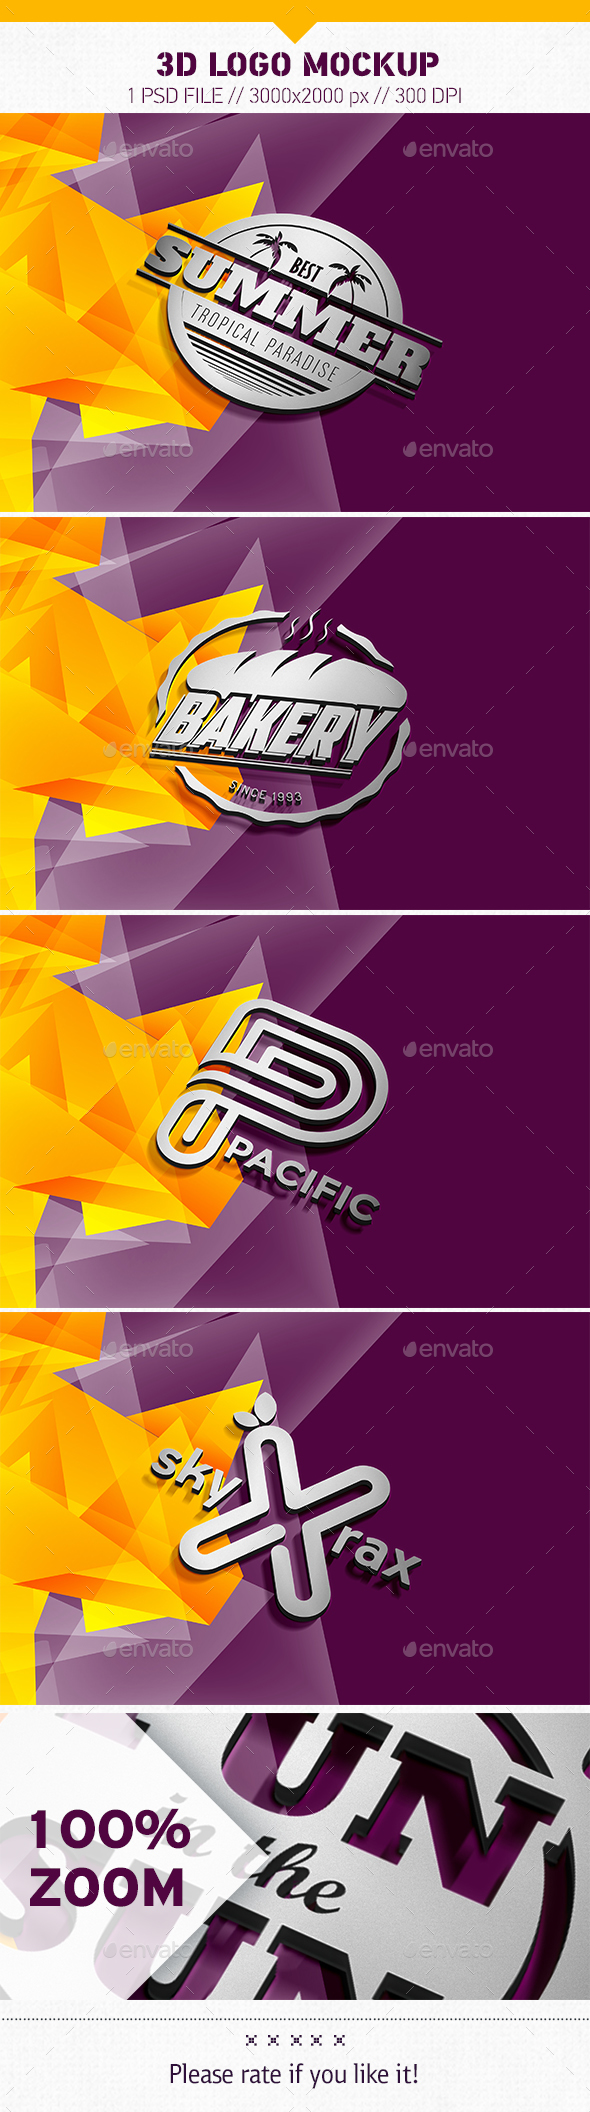 3D Logo Mockup - Product Mock-Ups Graphics